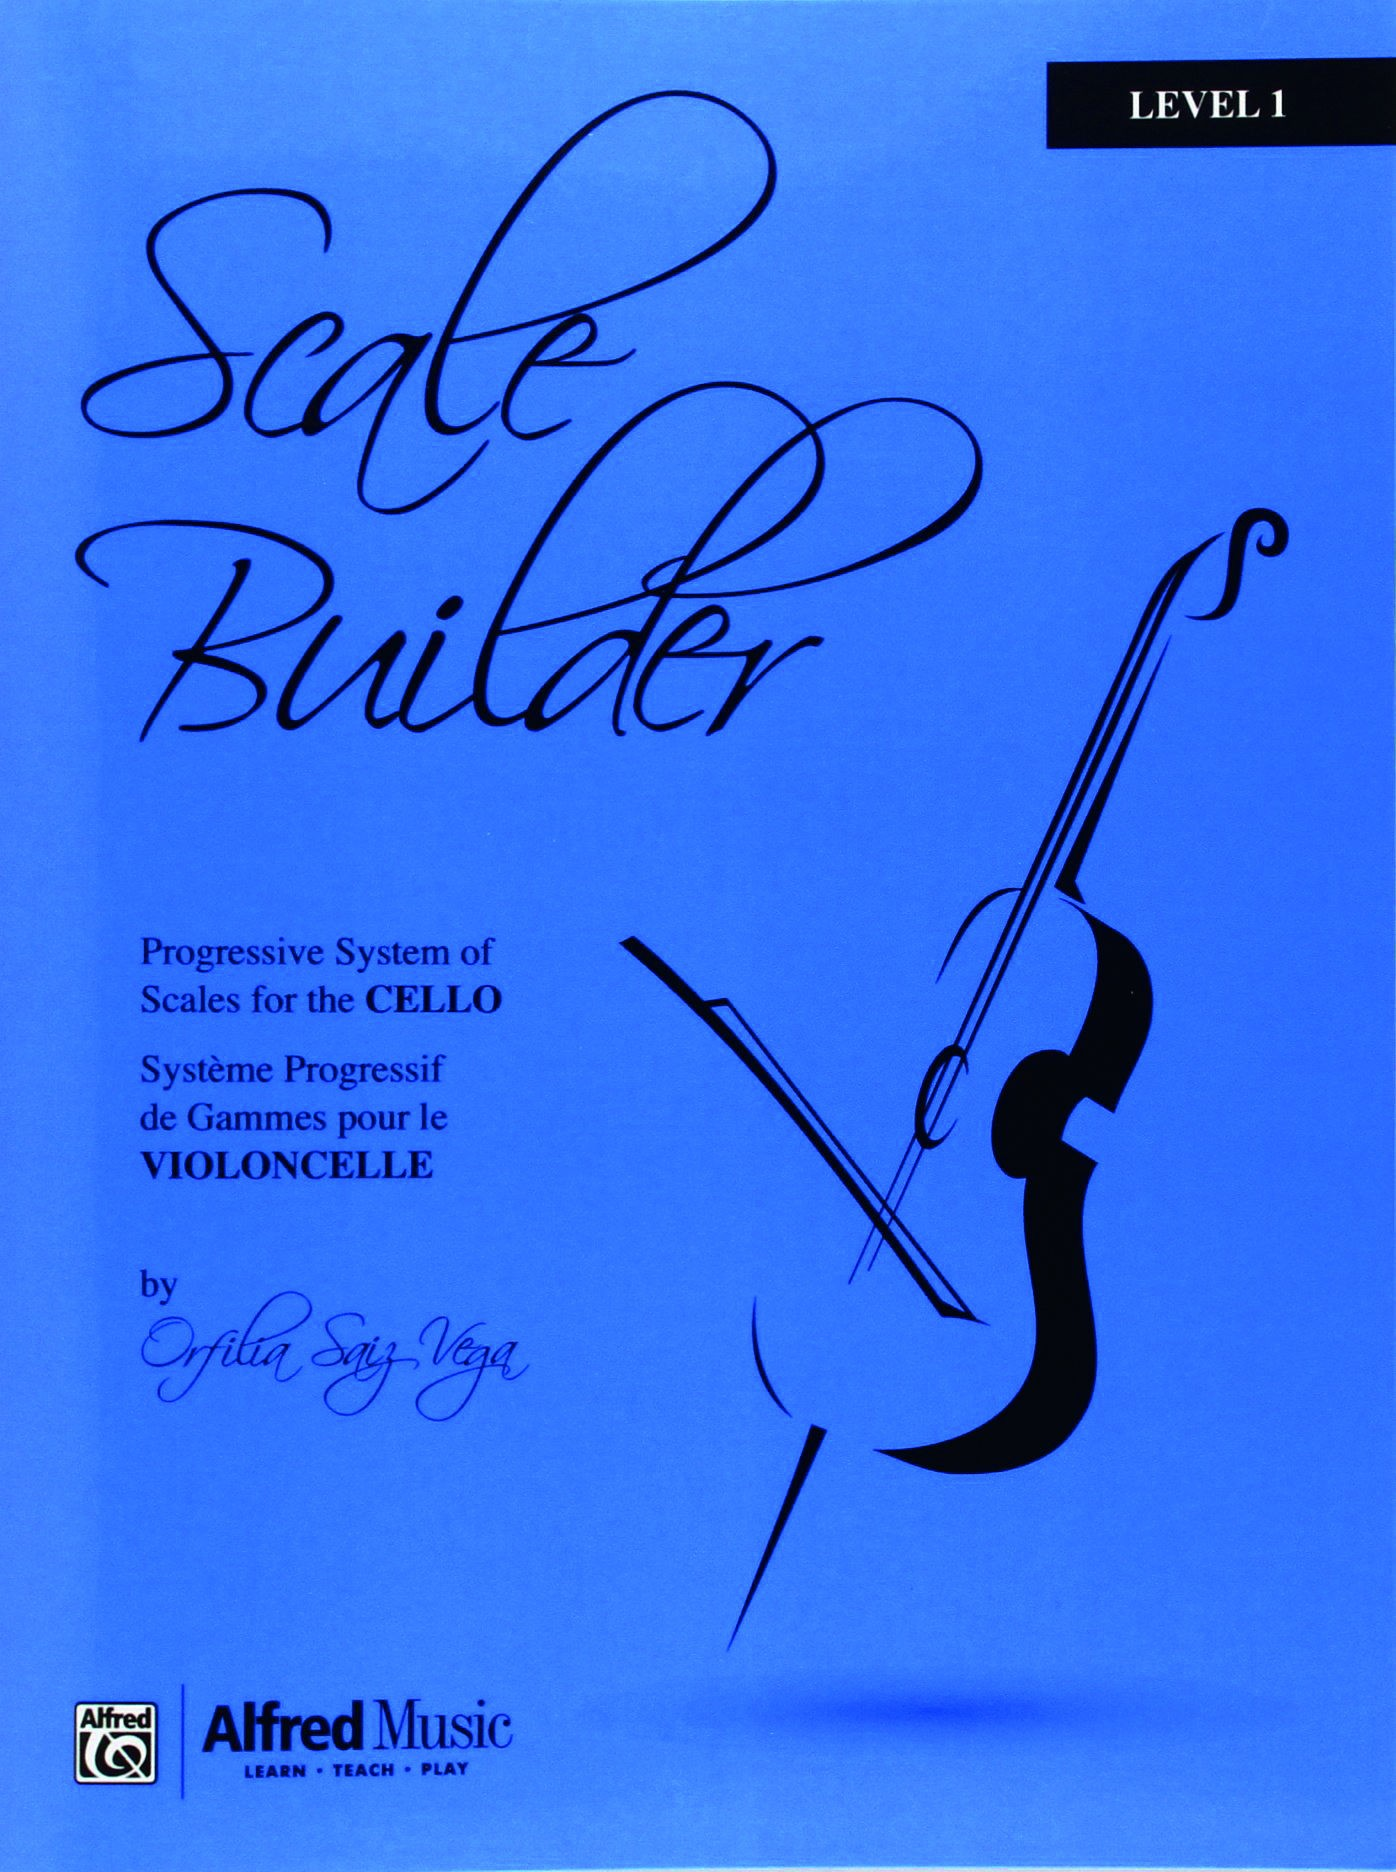 Scale Builder for Cello Level 1